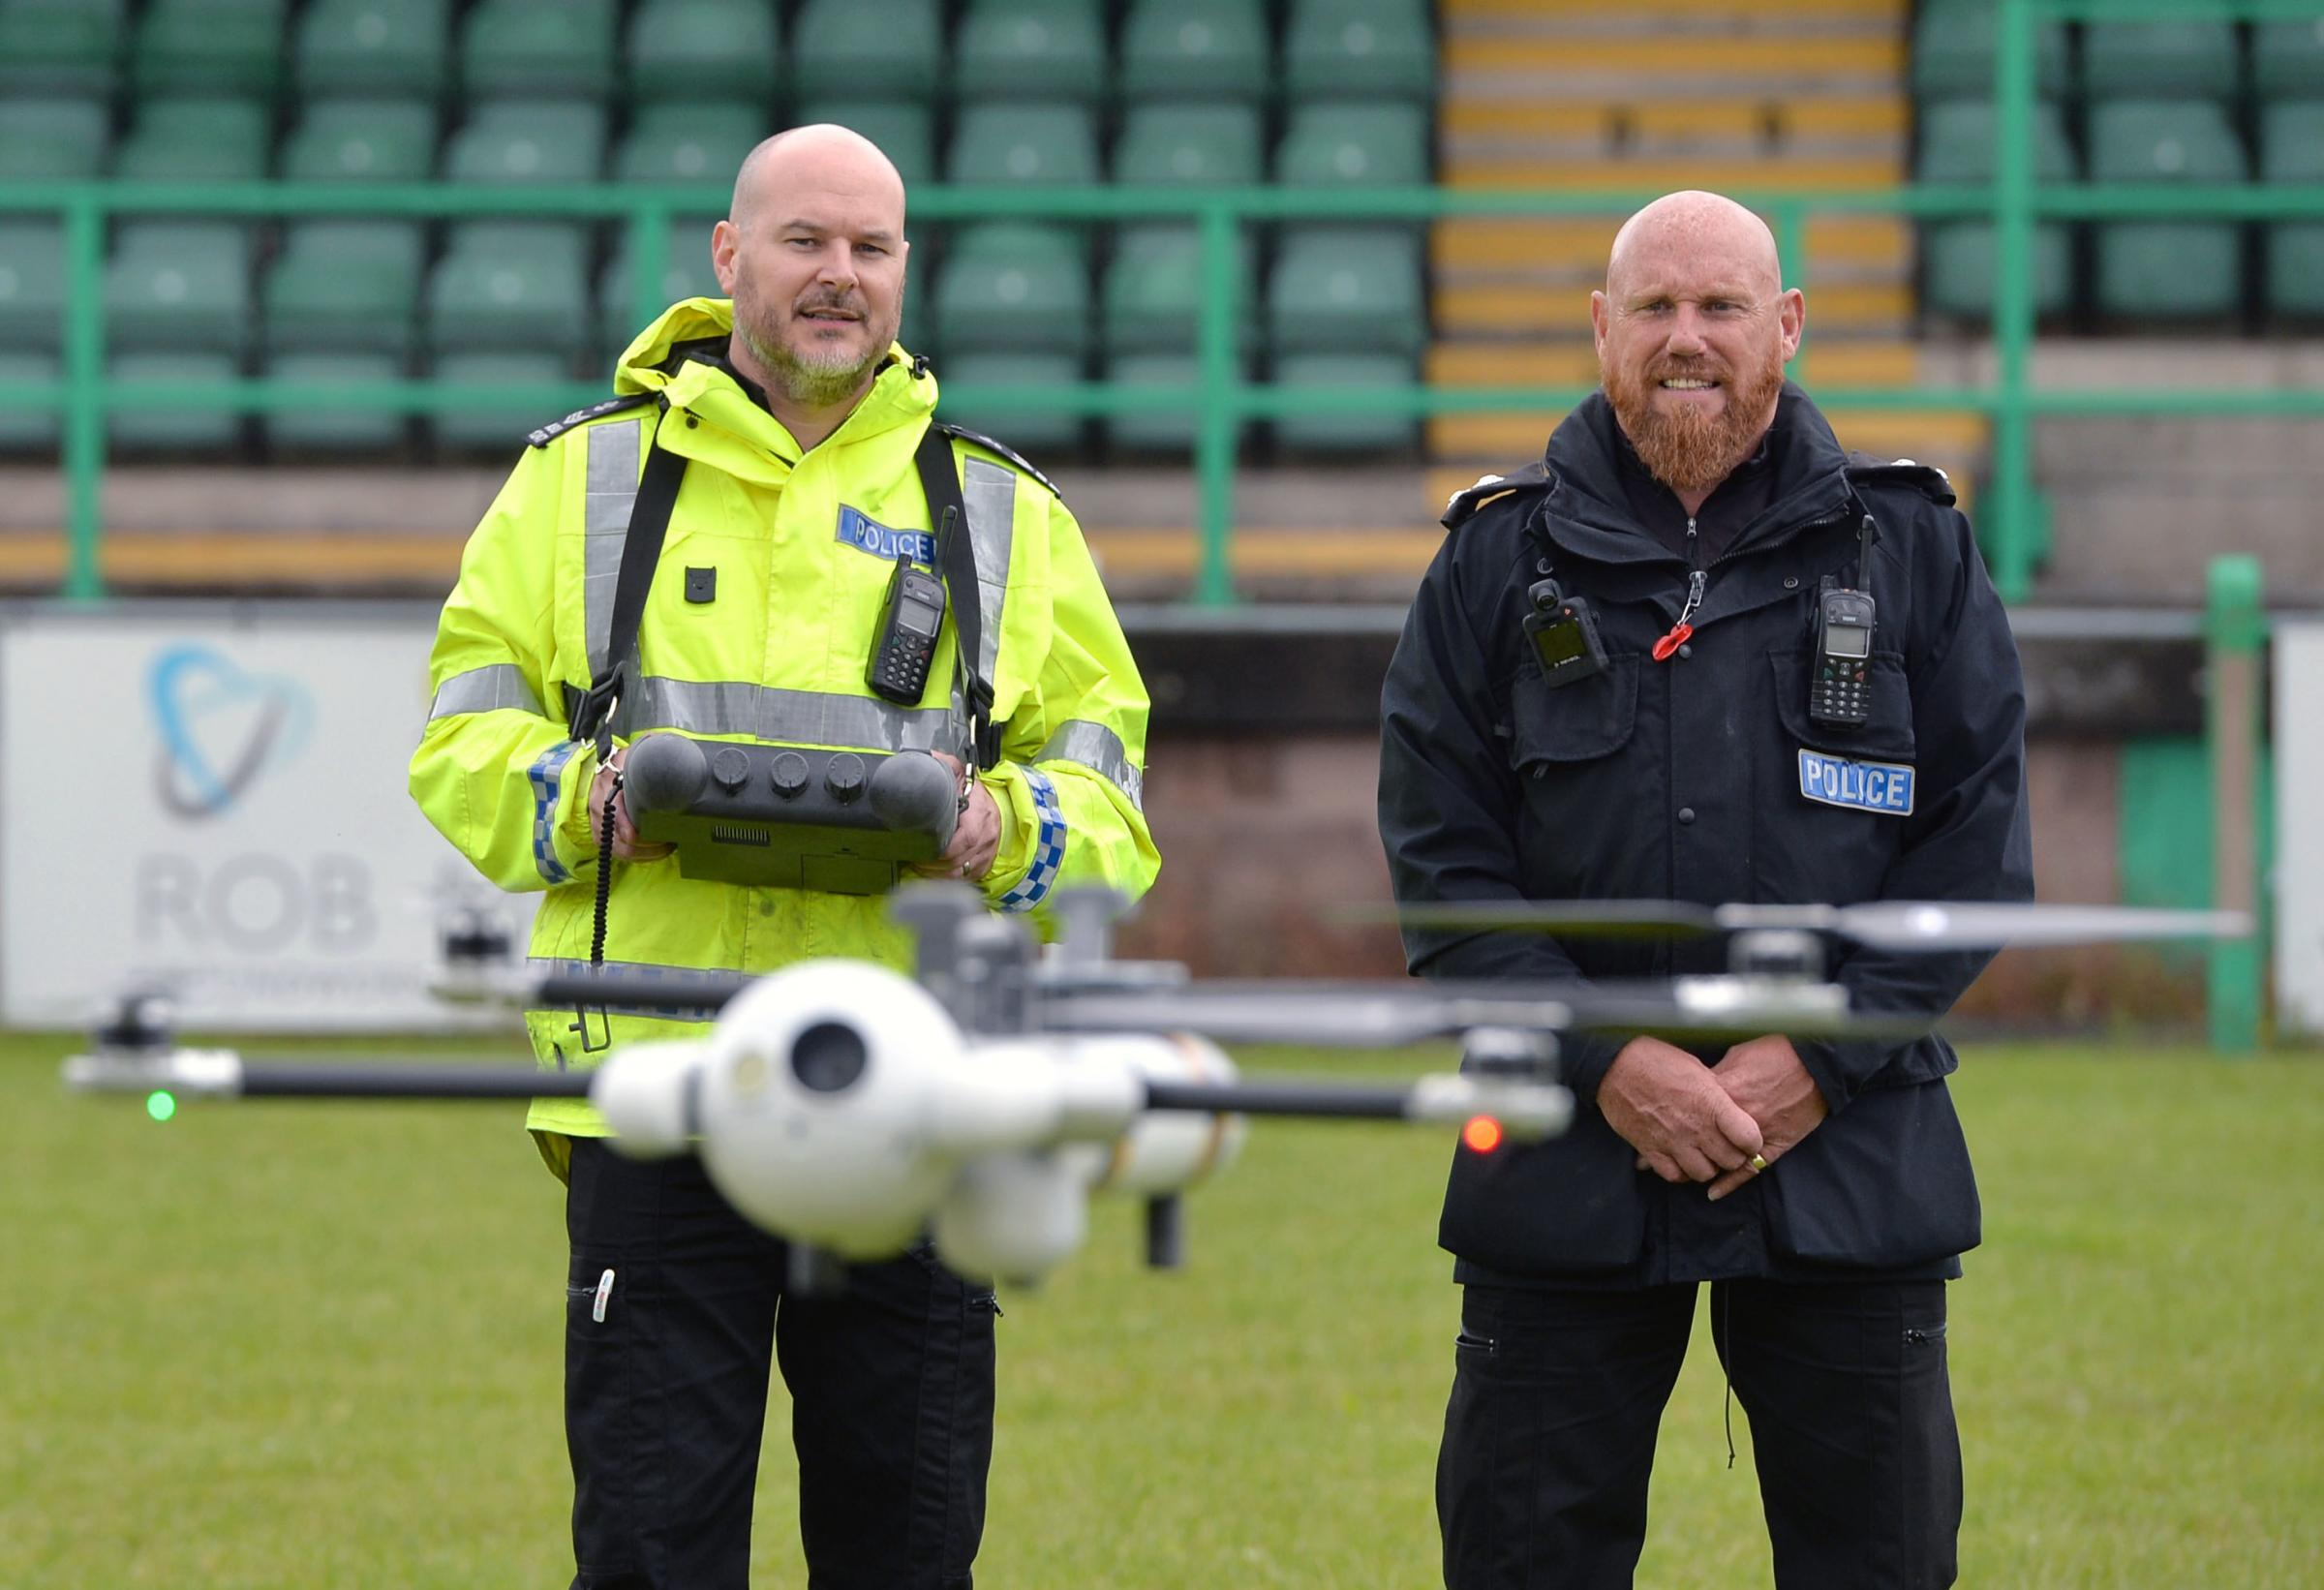 Gwent Police unveil state-of-the-art £20k crime-fighting drone